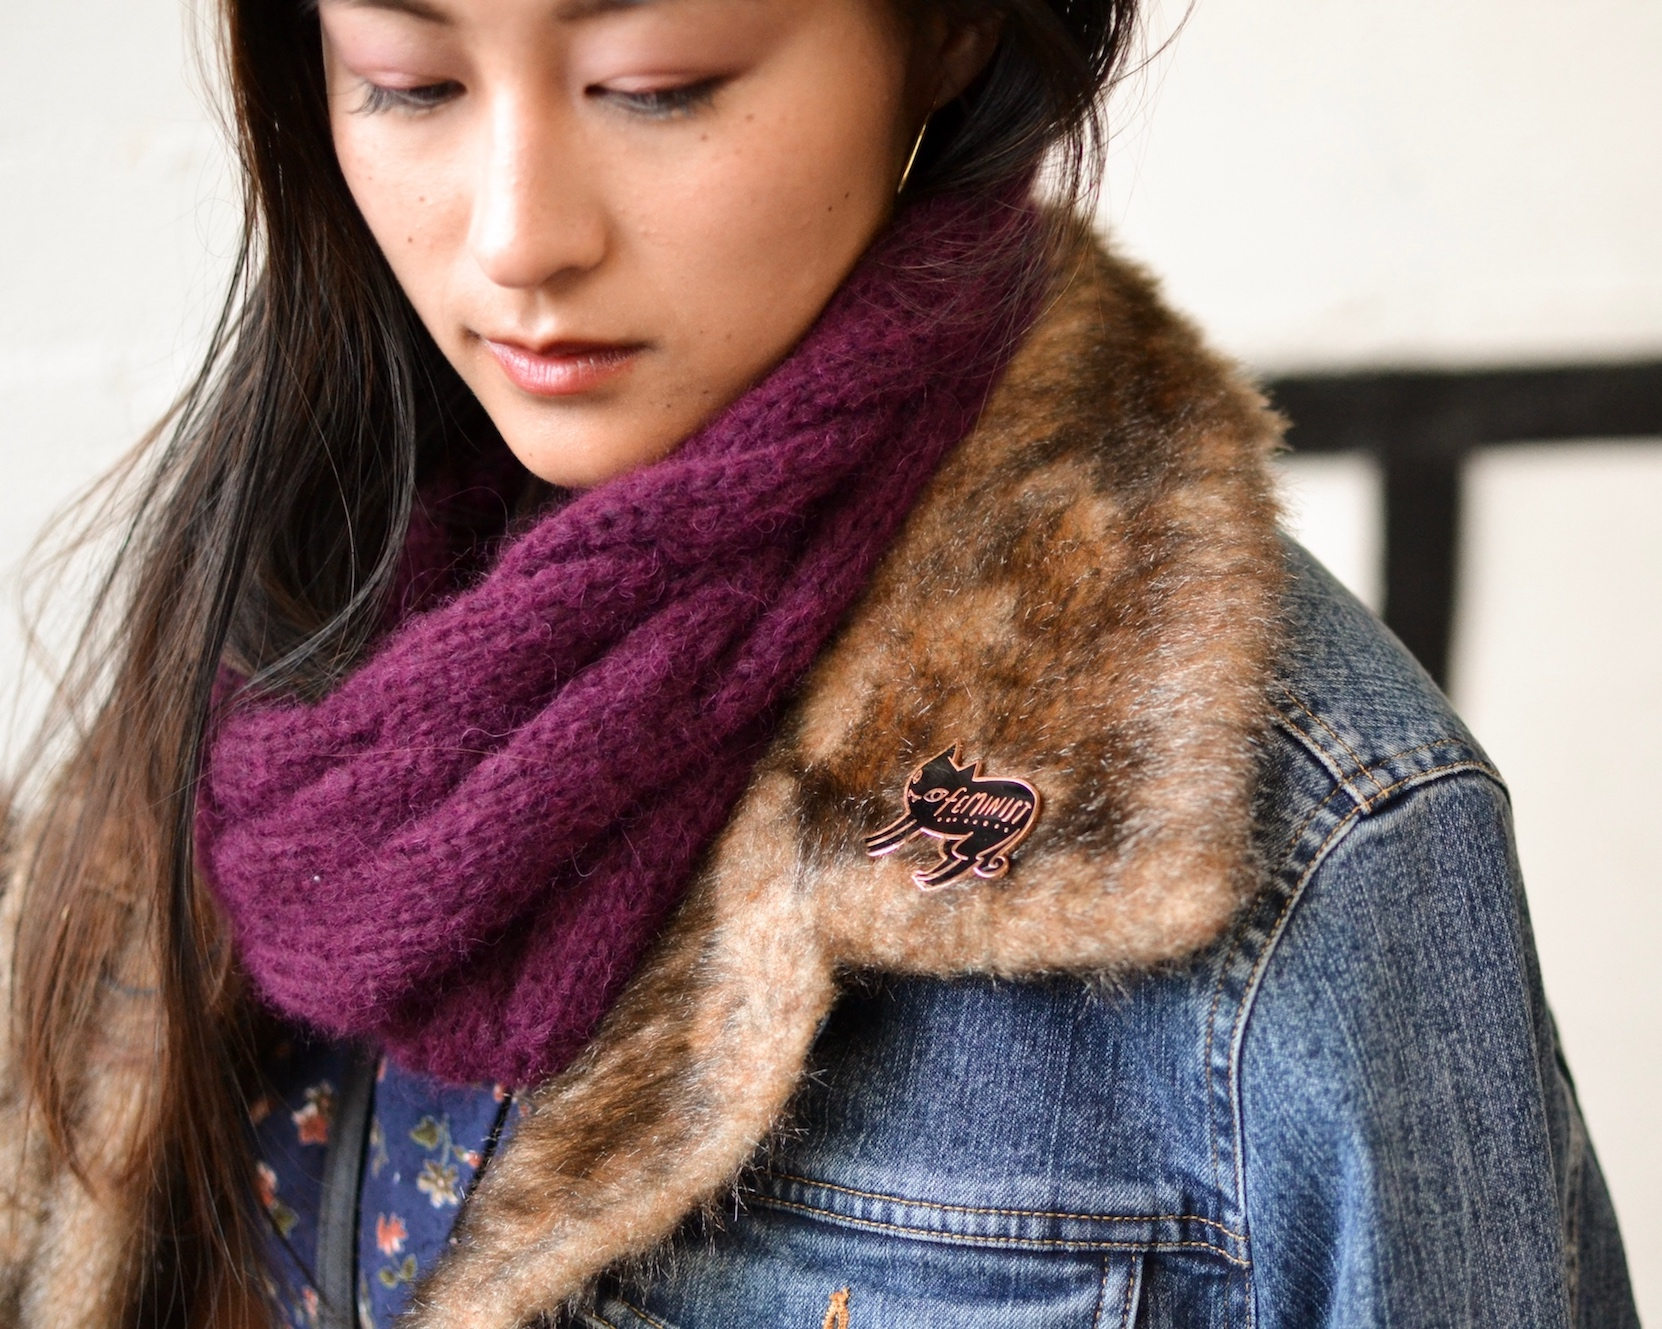 Handmade knit scarf // A Week Of Empowered Outfits With Cat Chiang From Restitchstance on The Good Trade